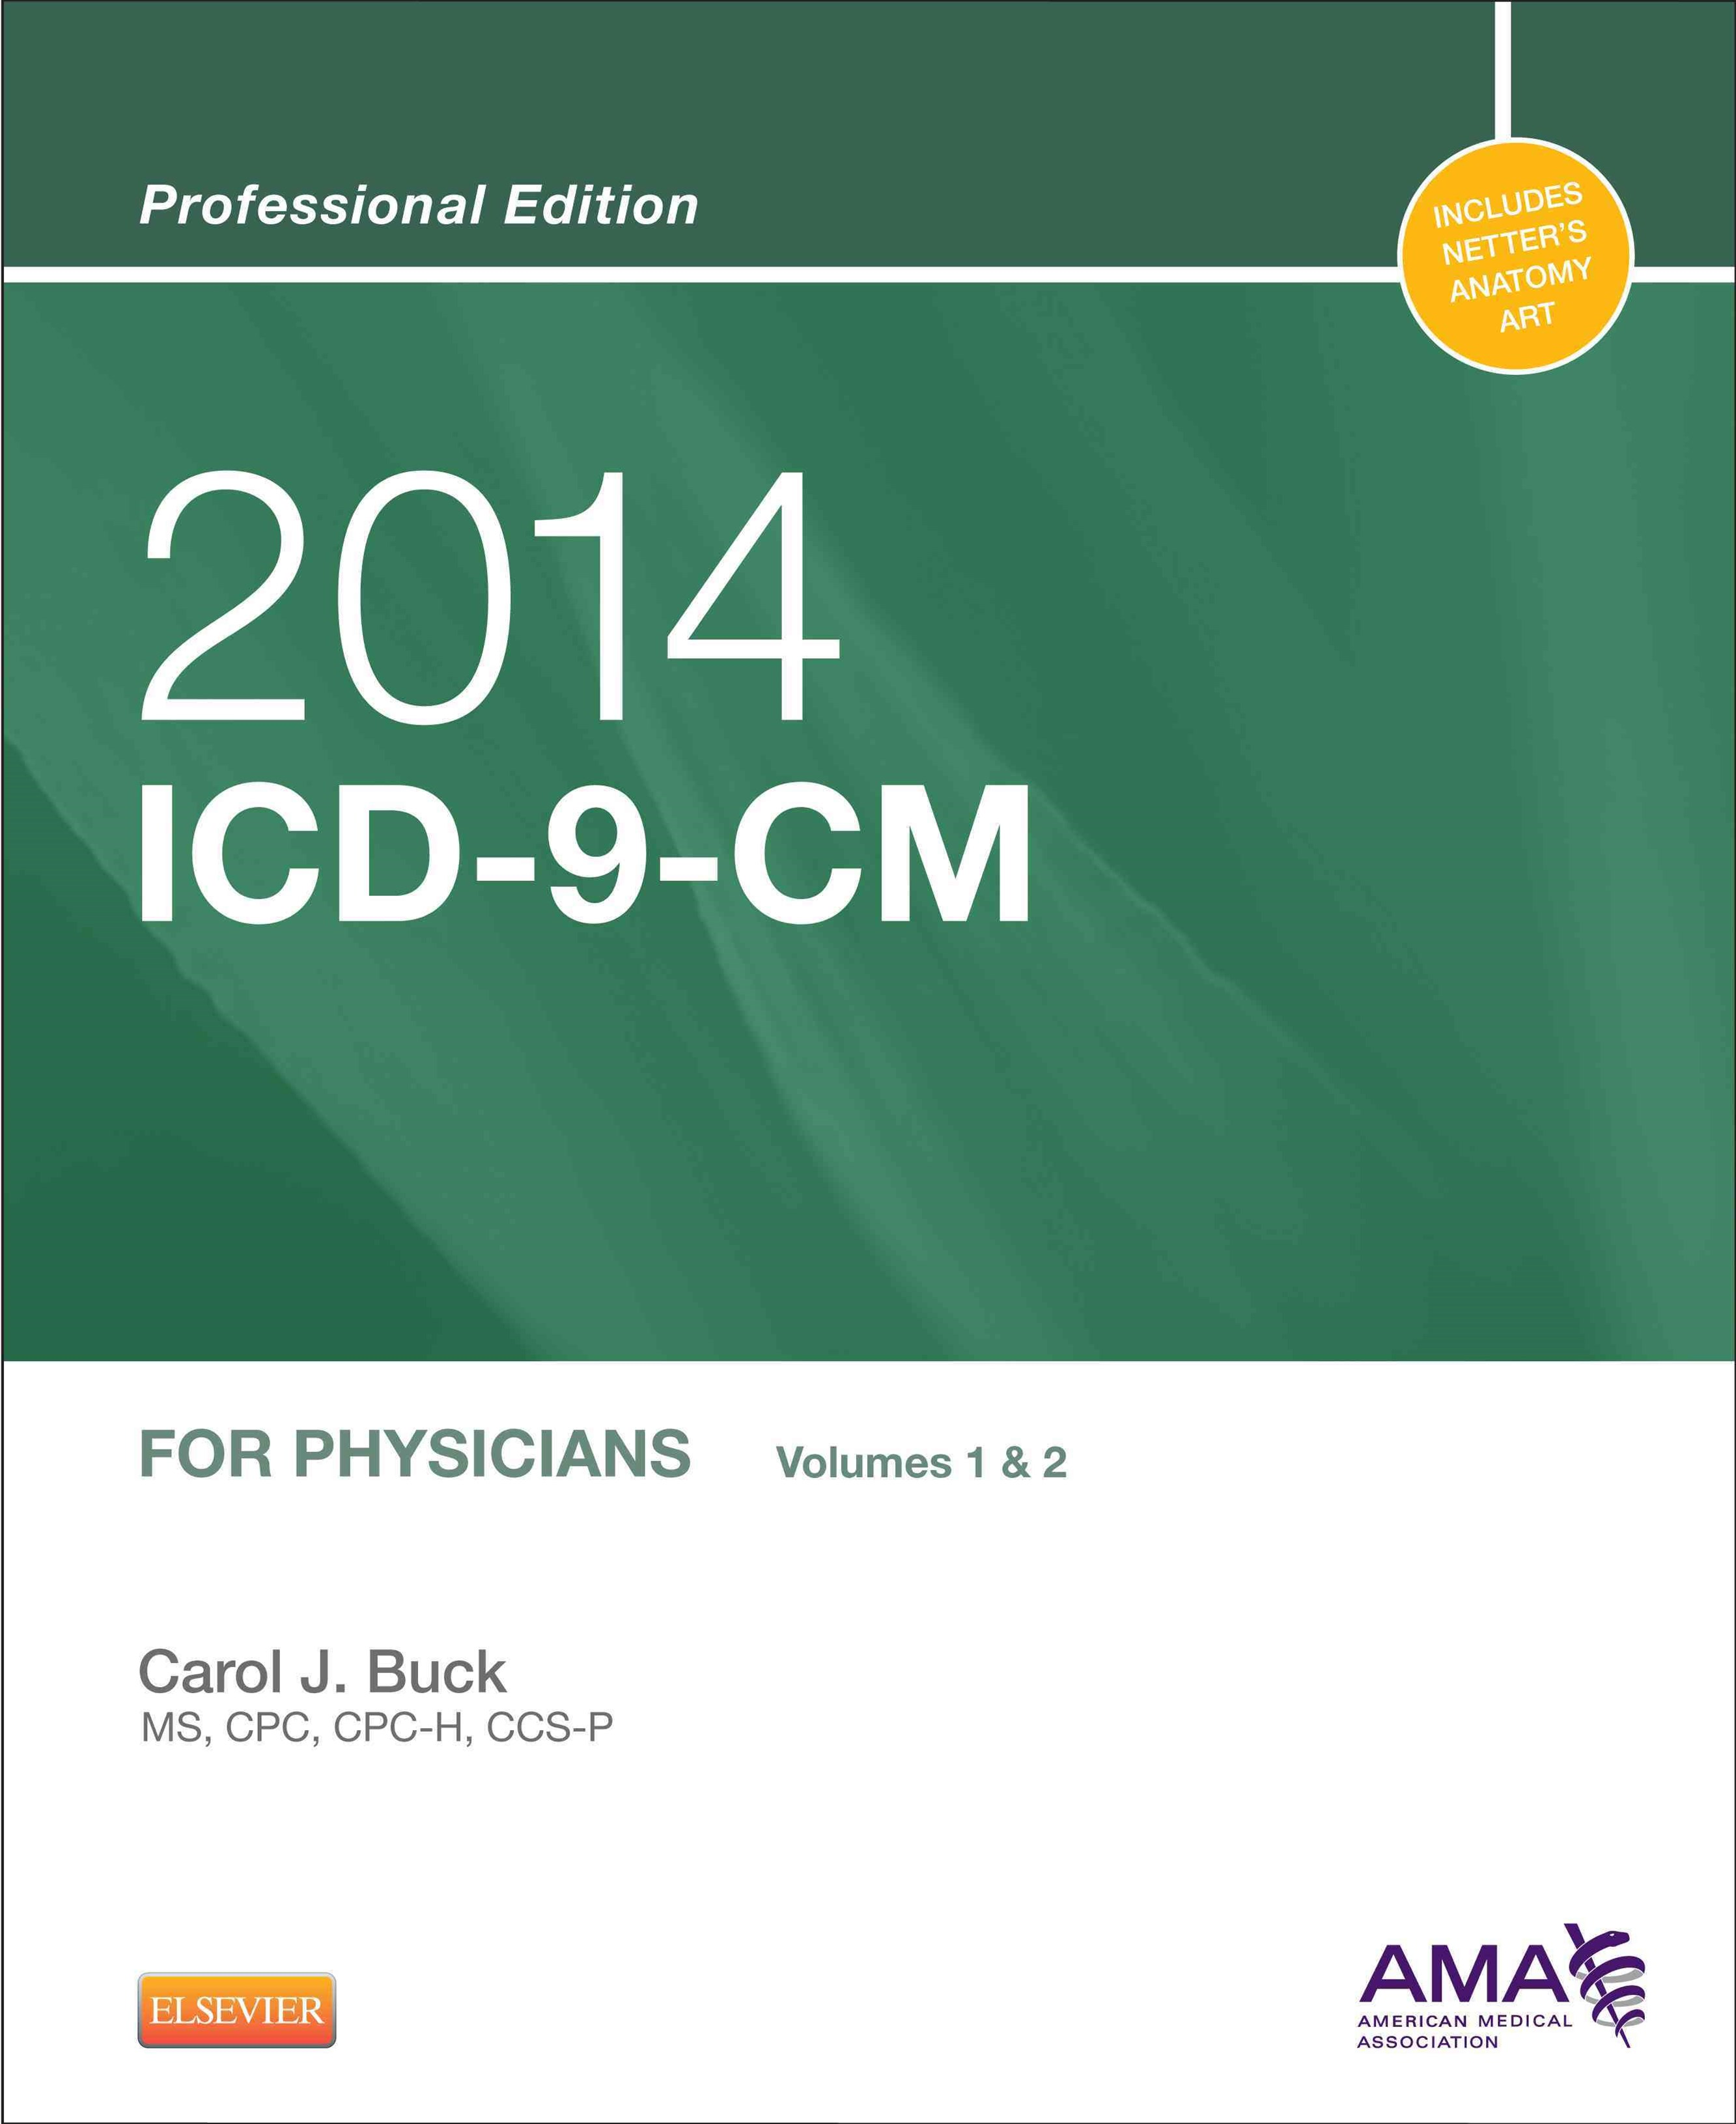 ICD-9-CM 2014 for Physicians